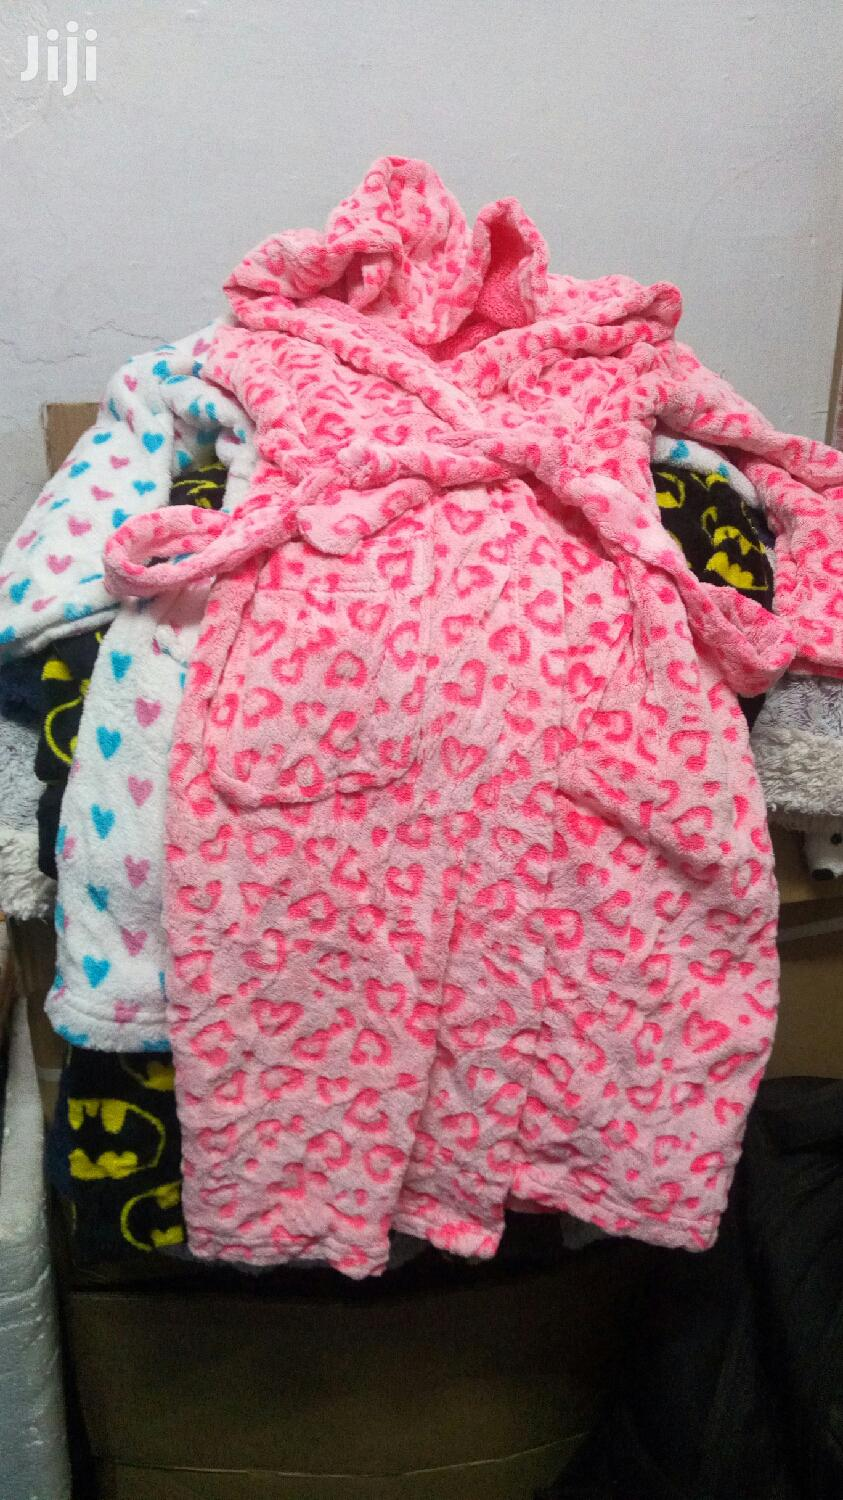 Bathing Gown/ Robe/ Towel With A Hood | Children's Clothing for sale in Nairobi Central, Nairobi, Kenya